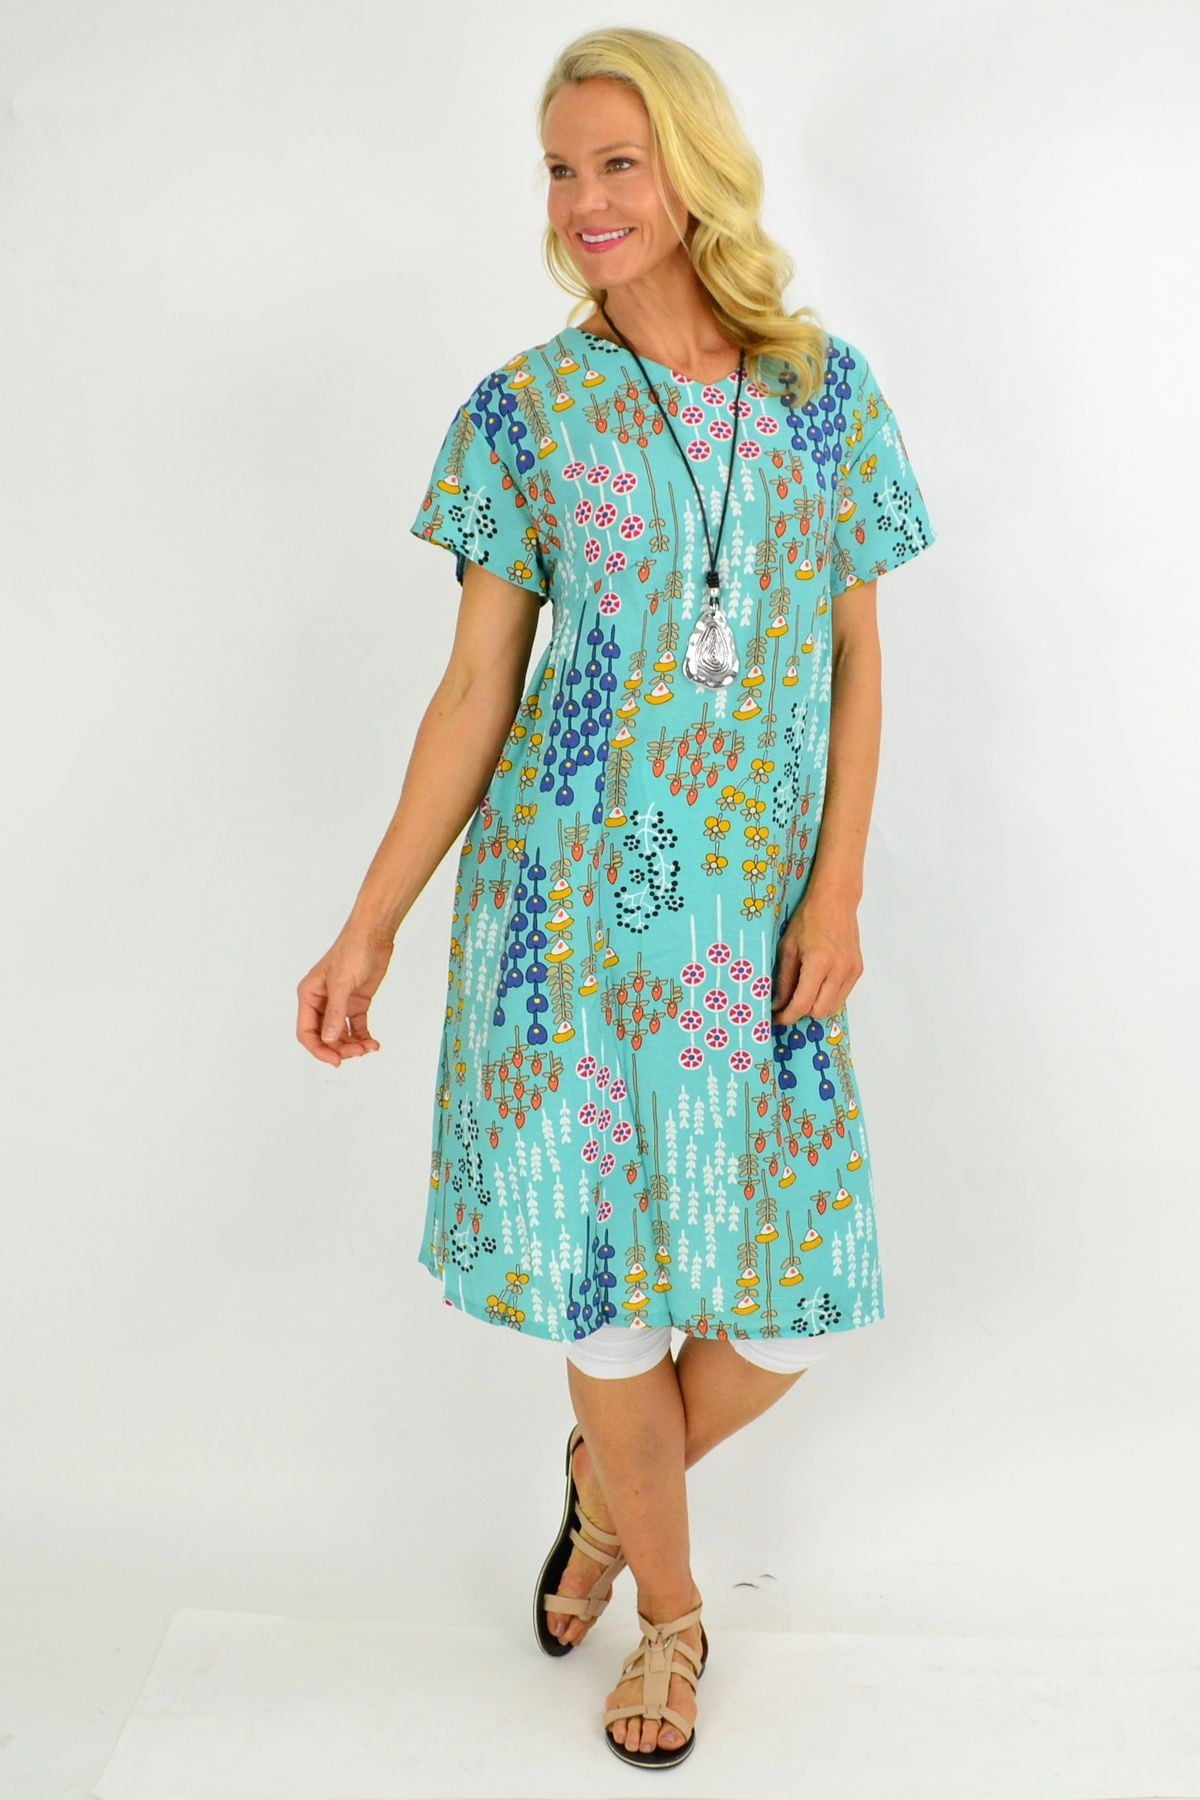 Aqua Berry Tunic Dress | I Love Tunics | Tunic Tops | Tunic | Tunic Dresses  | womens clothing online